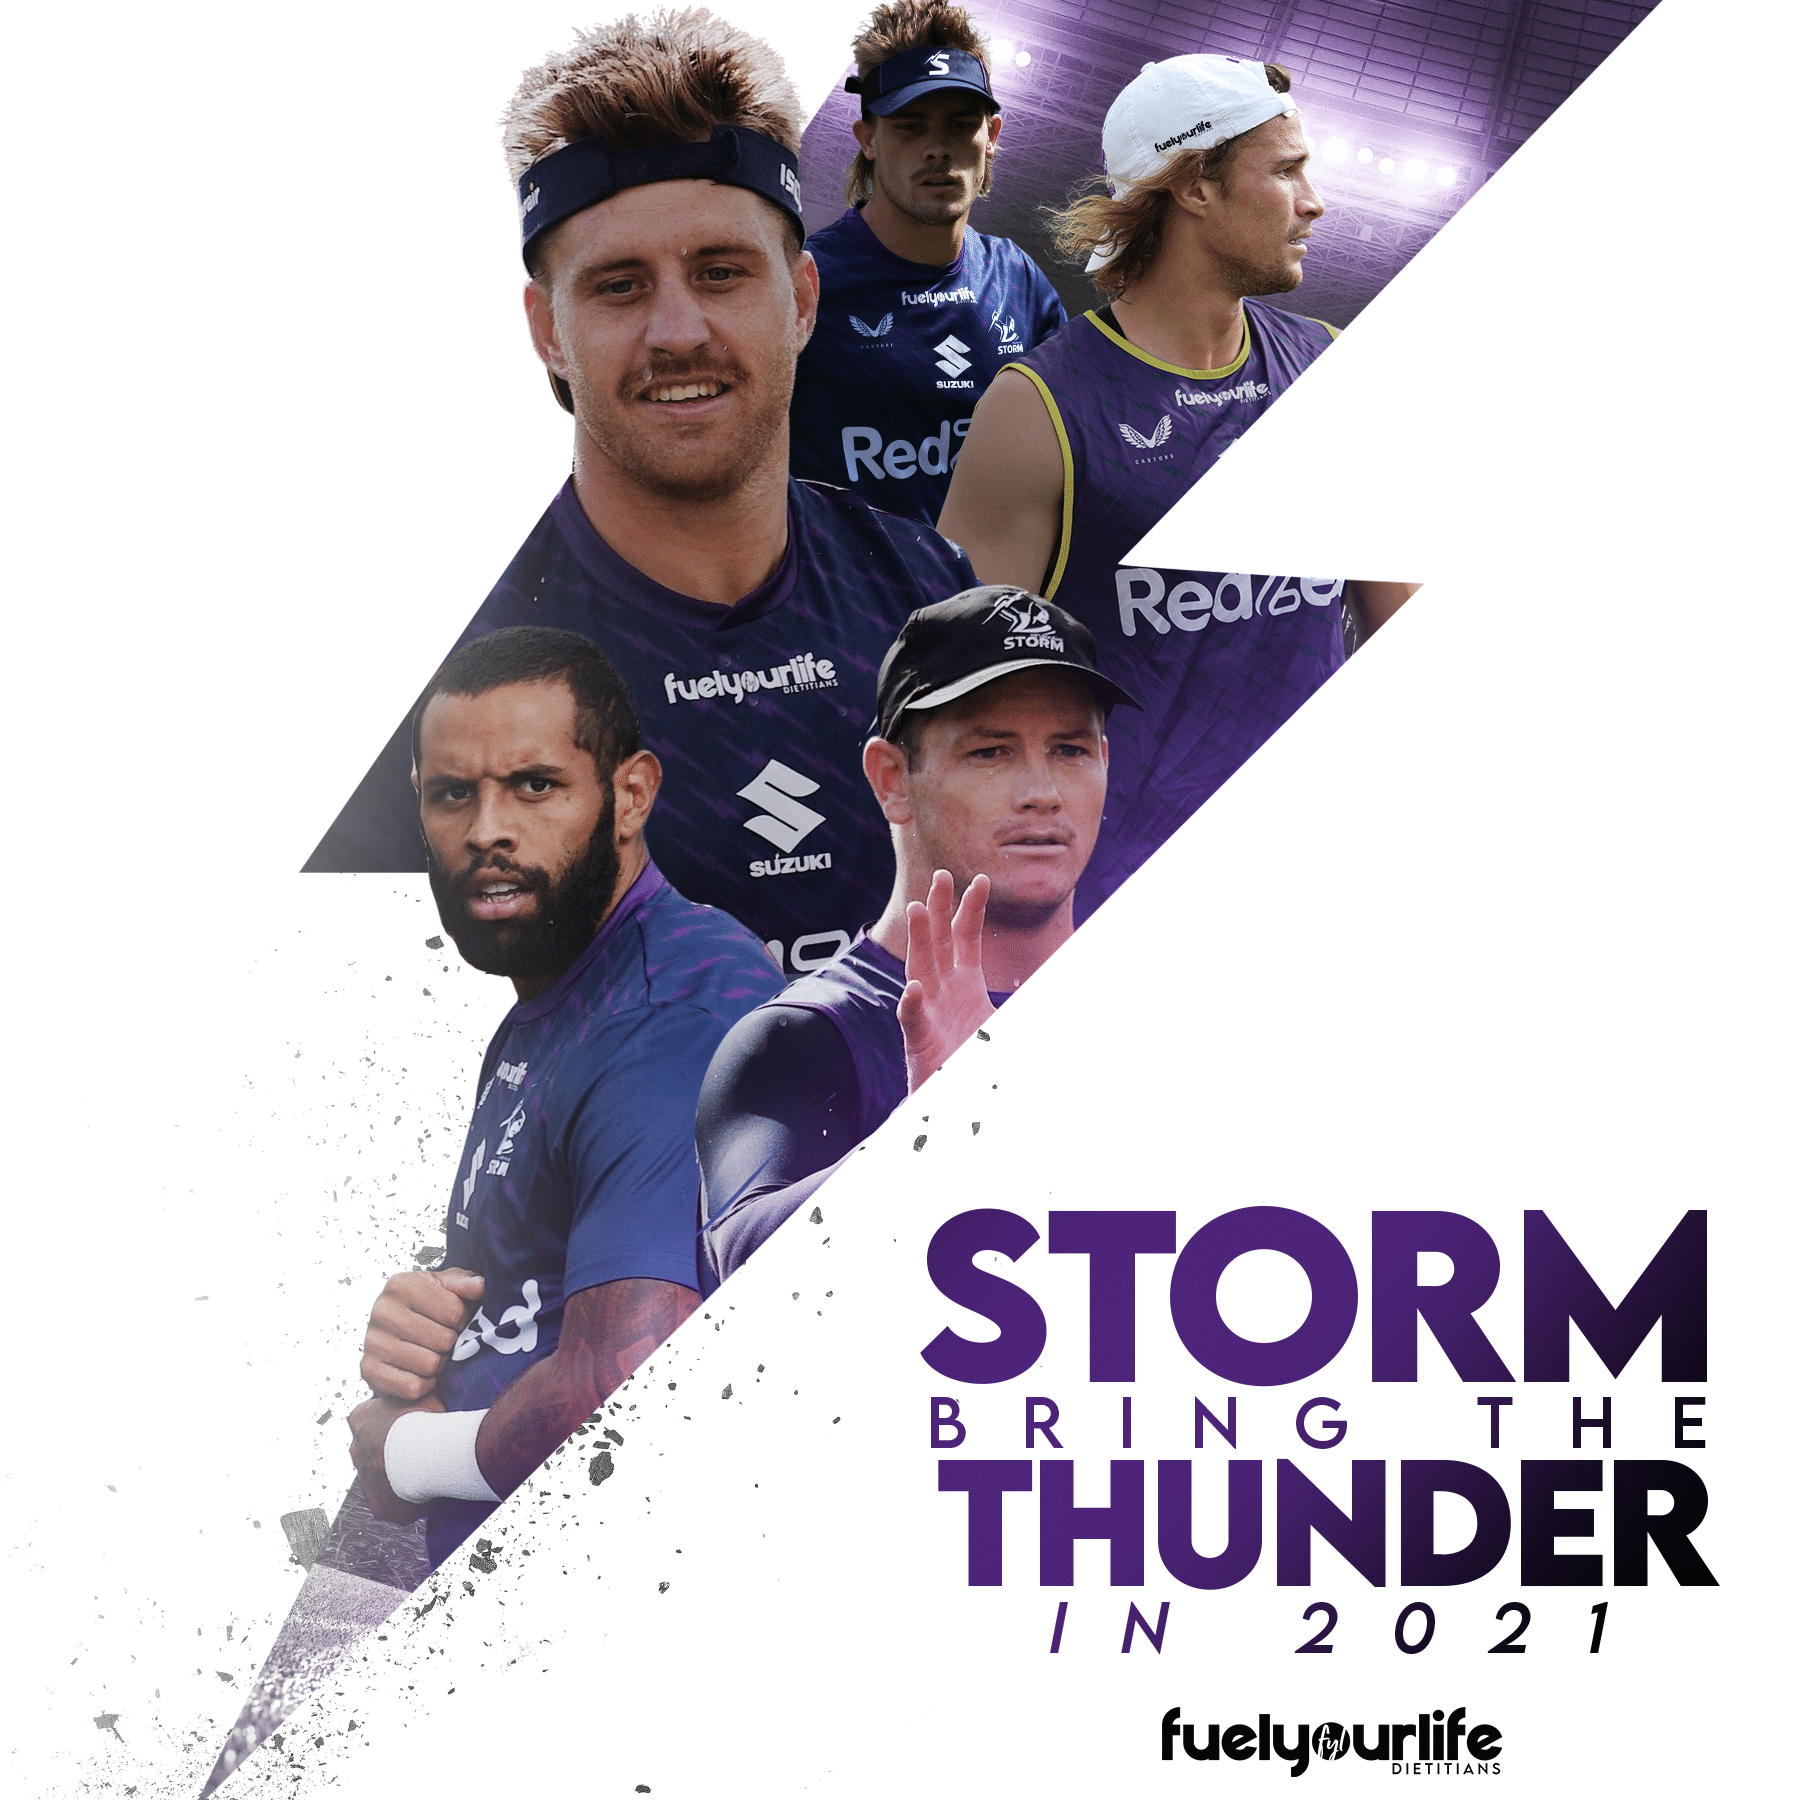 Melbourne Storm Bring The Thunder in 2021